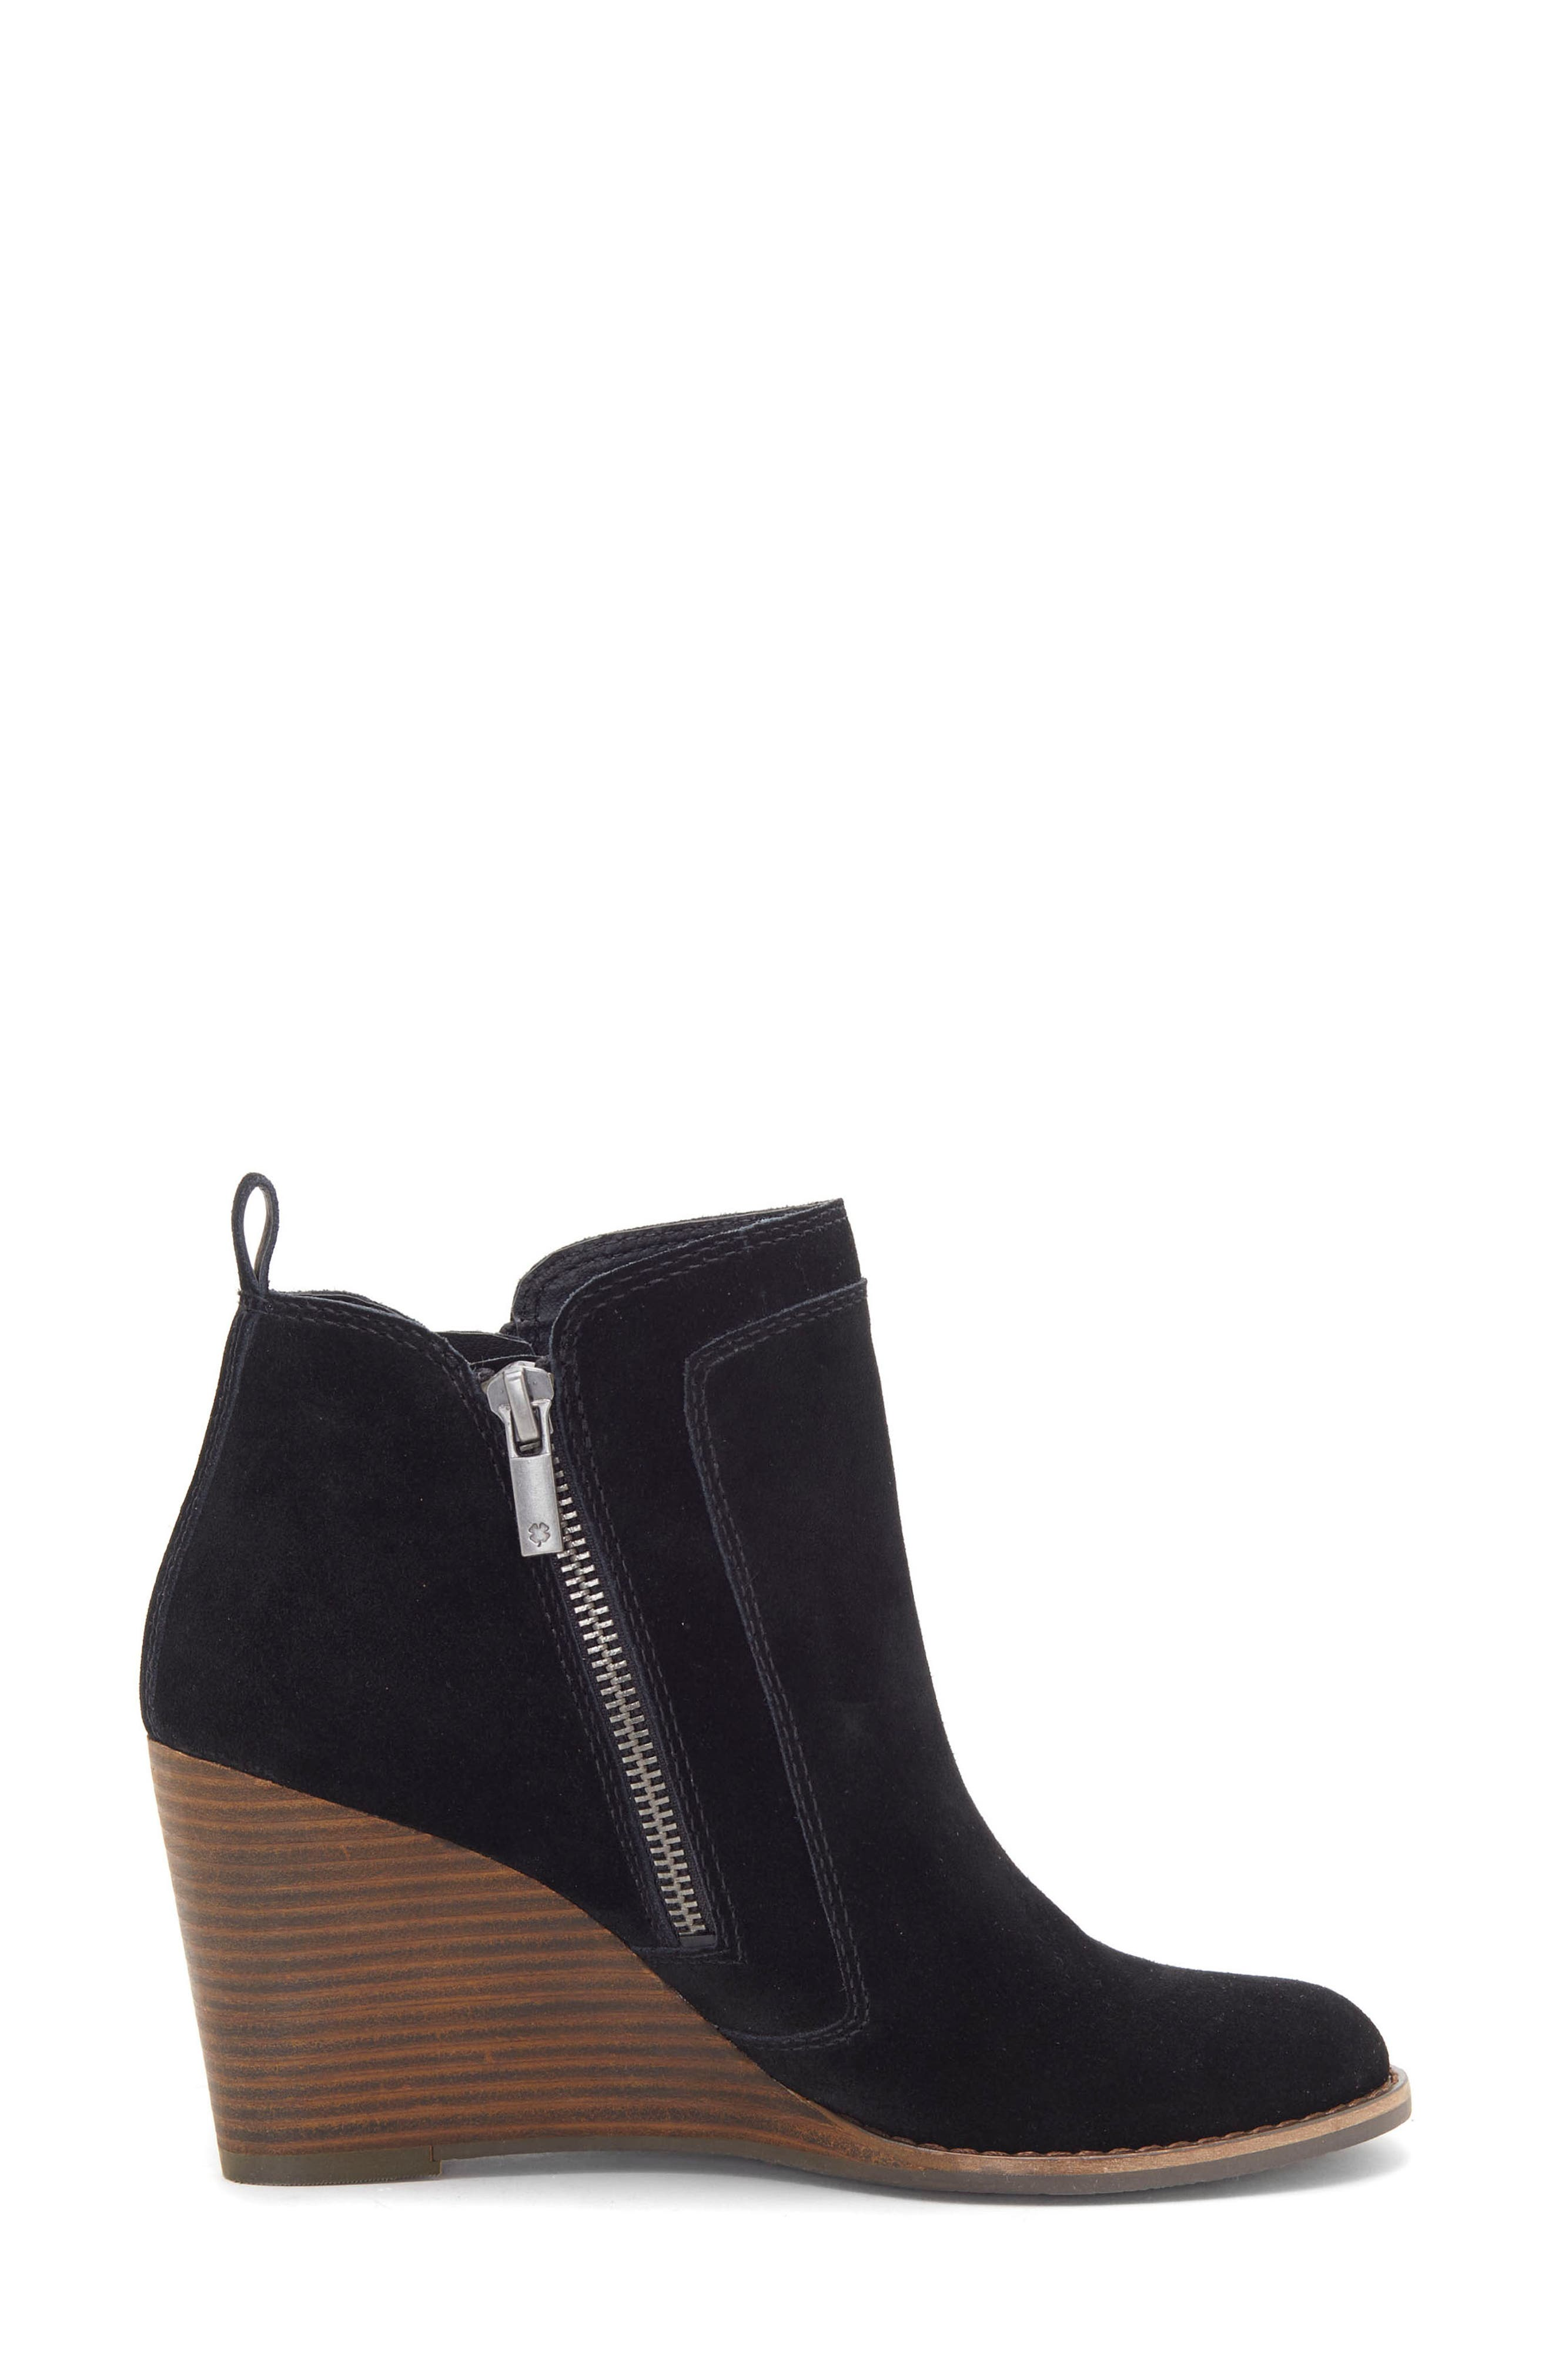 LUCKY BRAND, Yahir Wedge Bootie, Alternate thumbnail 3, color, BLACK SUEDE